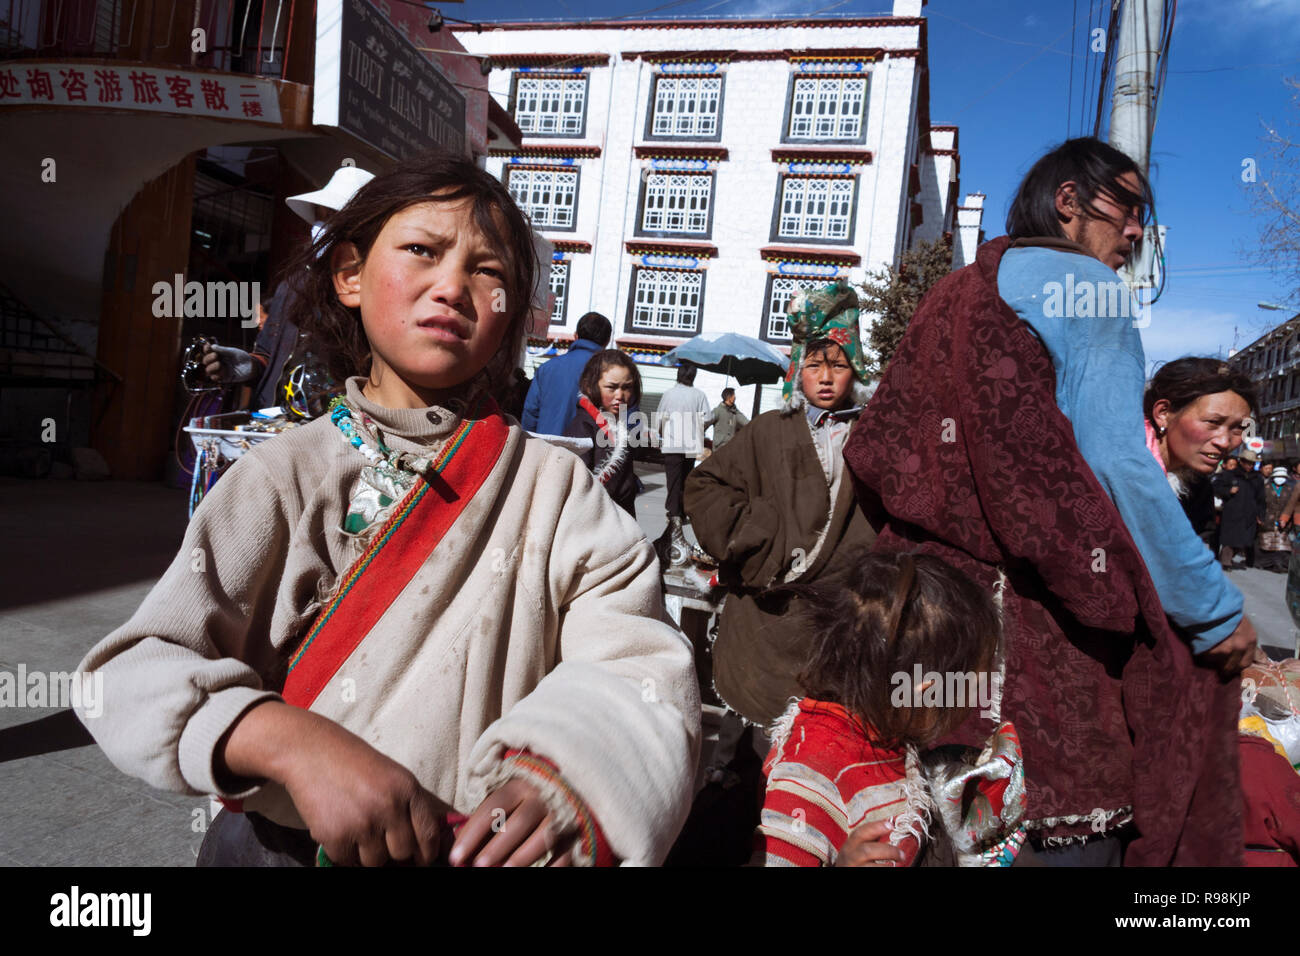 Lhasa, Tibet Autonomous Region, China : Street portrait of a Tibetan family in the streets of Lhasa. - Stock Image